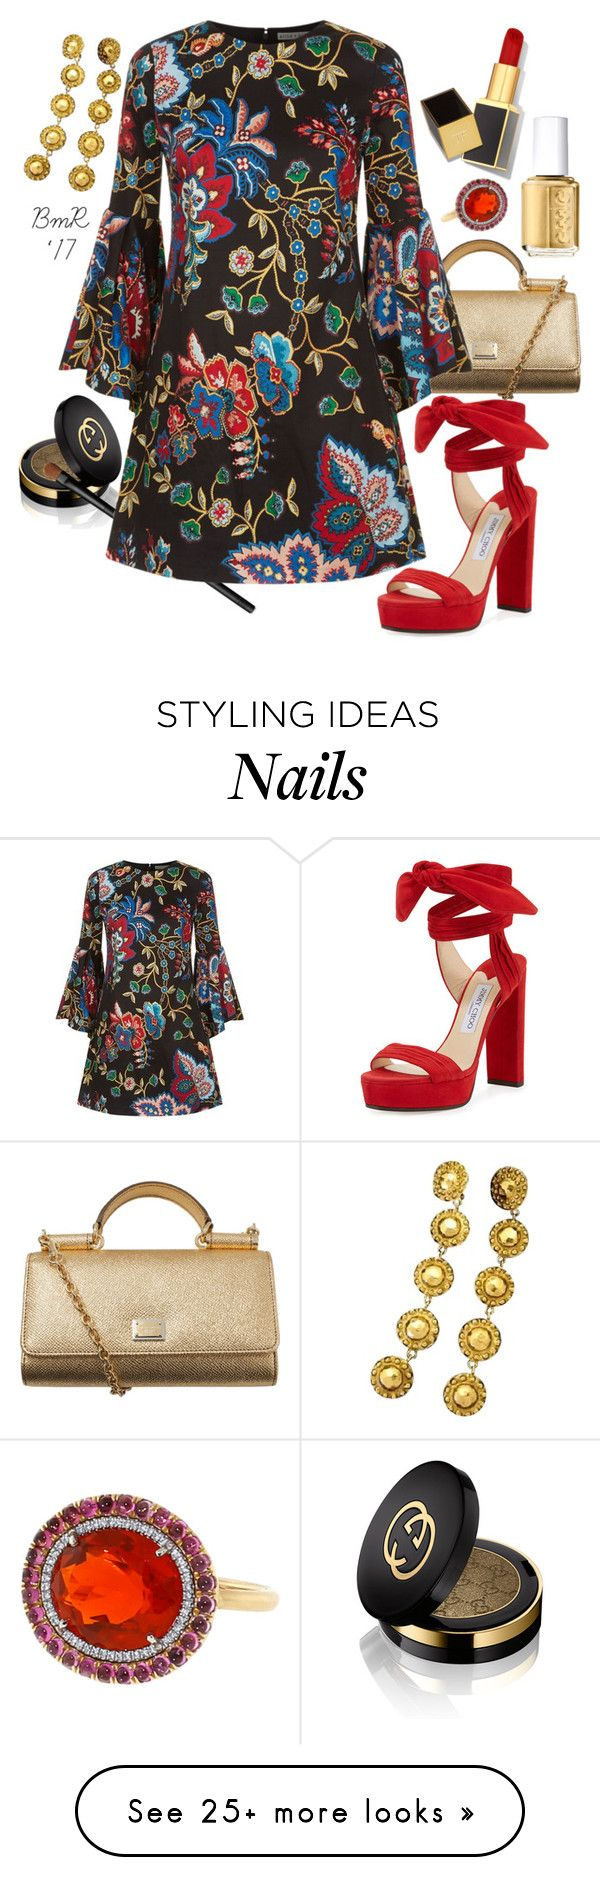 """""""Le Fleur"""" by barbmama on Polyvore featuring Gucci, NARS Cosmetics, Dolce&Gabbana, Alice + Olivia, Jimmy Choo, Essie, Tom Ford, Chanel and Irene Neuwirth"""